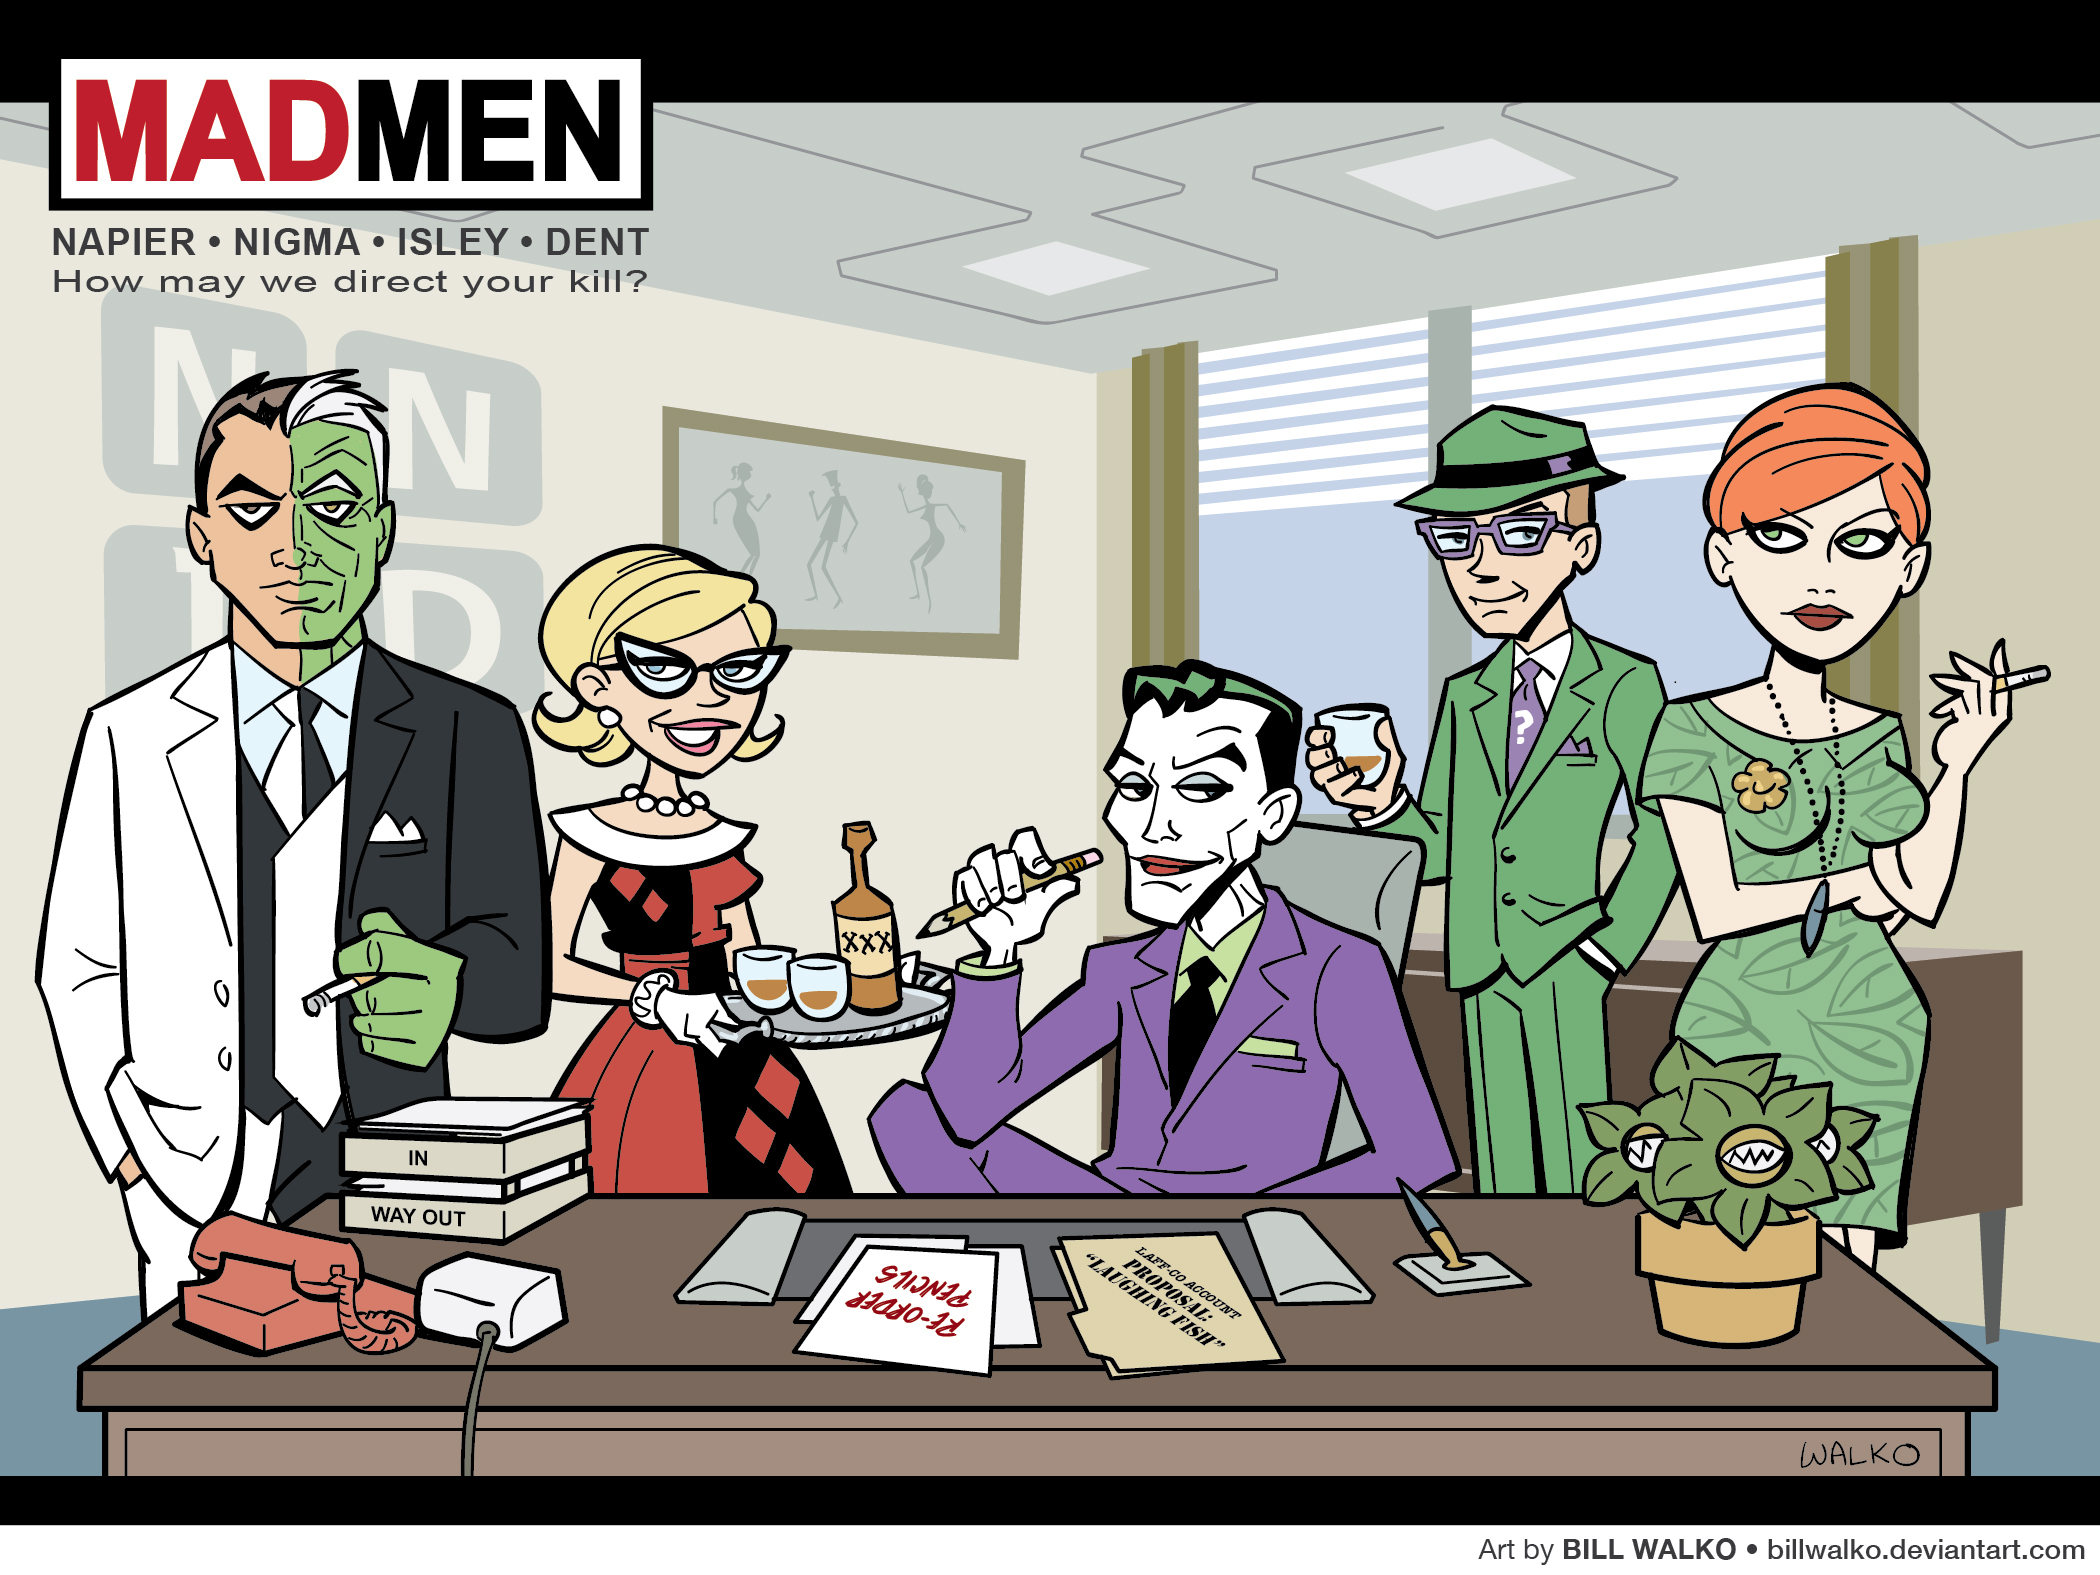 gotham_mad_men_by_billwalko-d5g6ah0